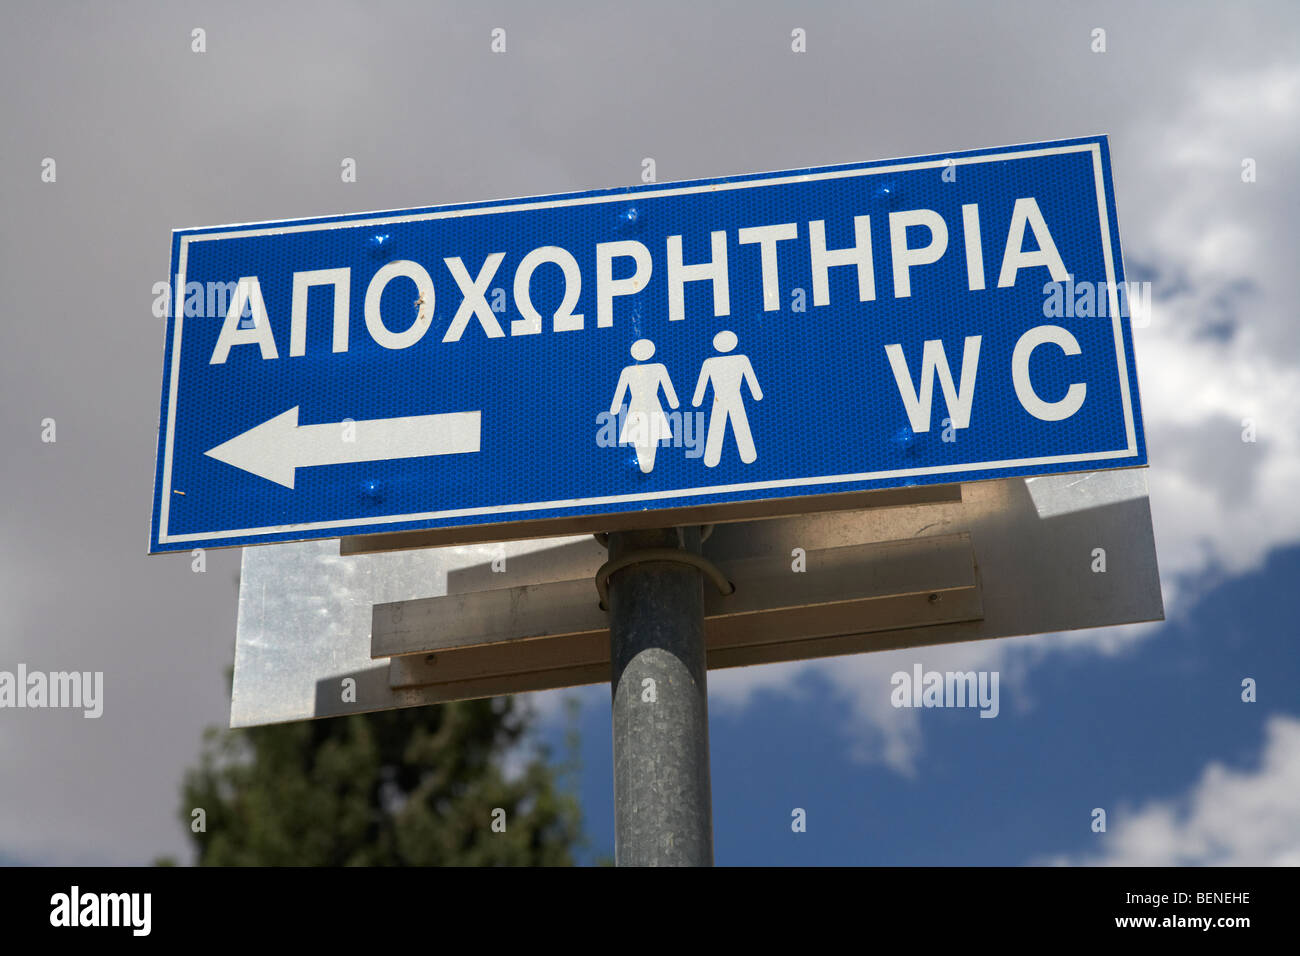 greek language bilingual wc public toilet sign in larnaca in the republic of cyprus - Stock Image